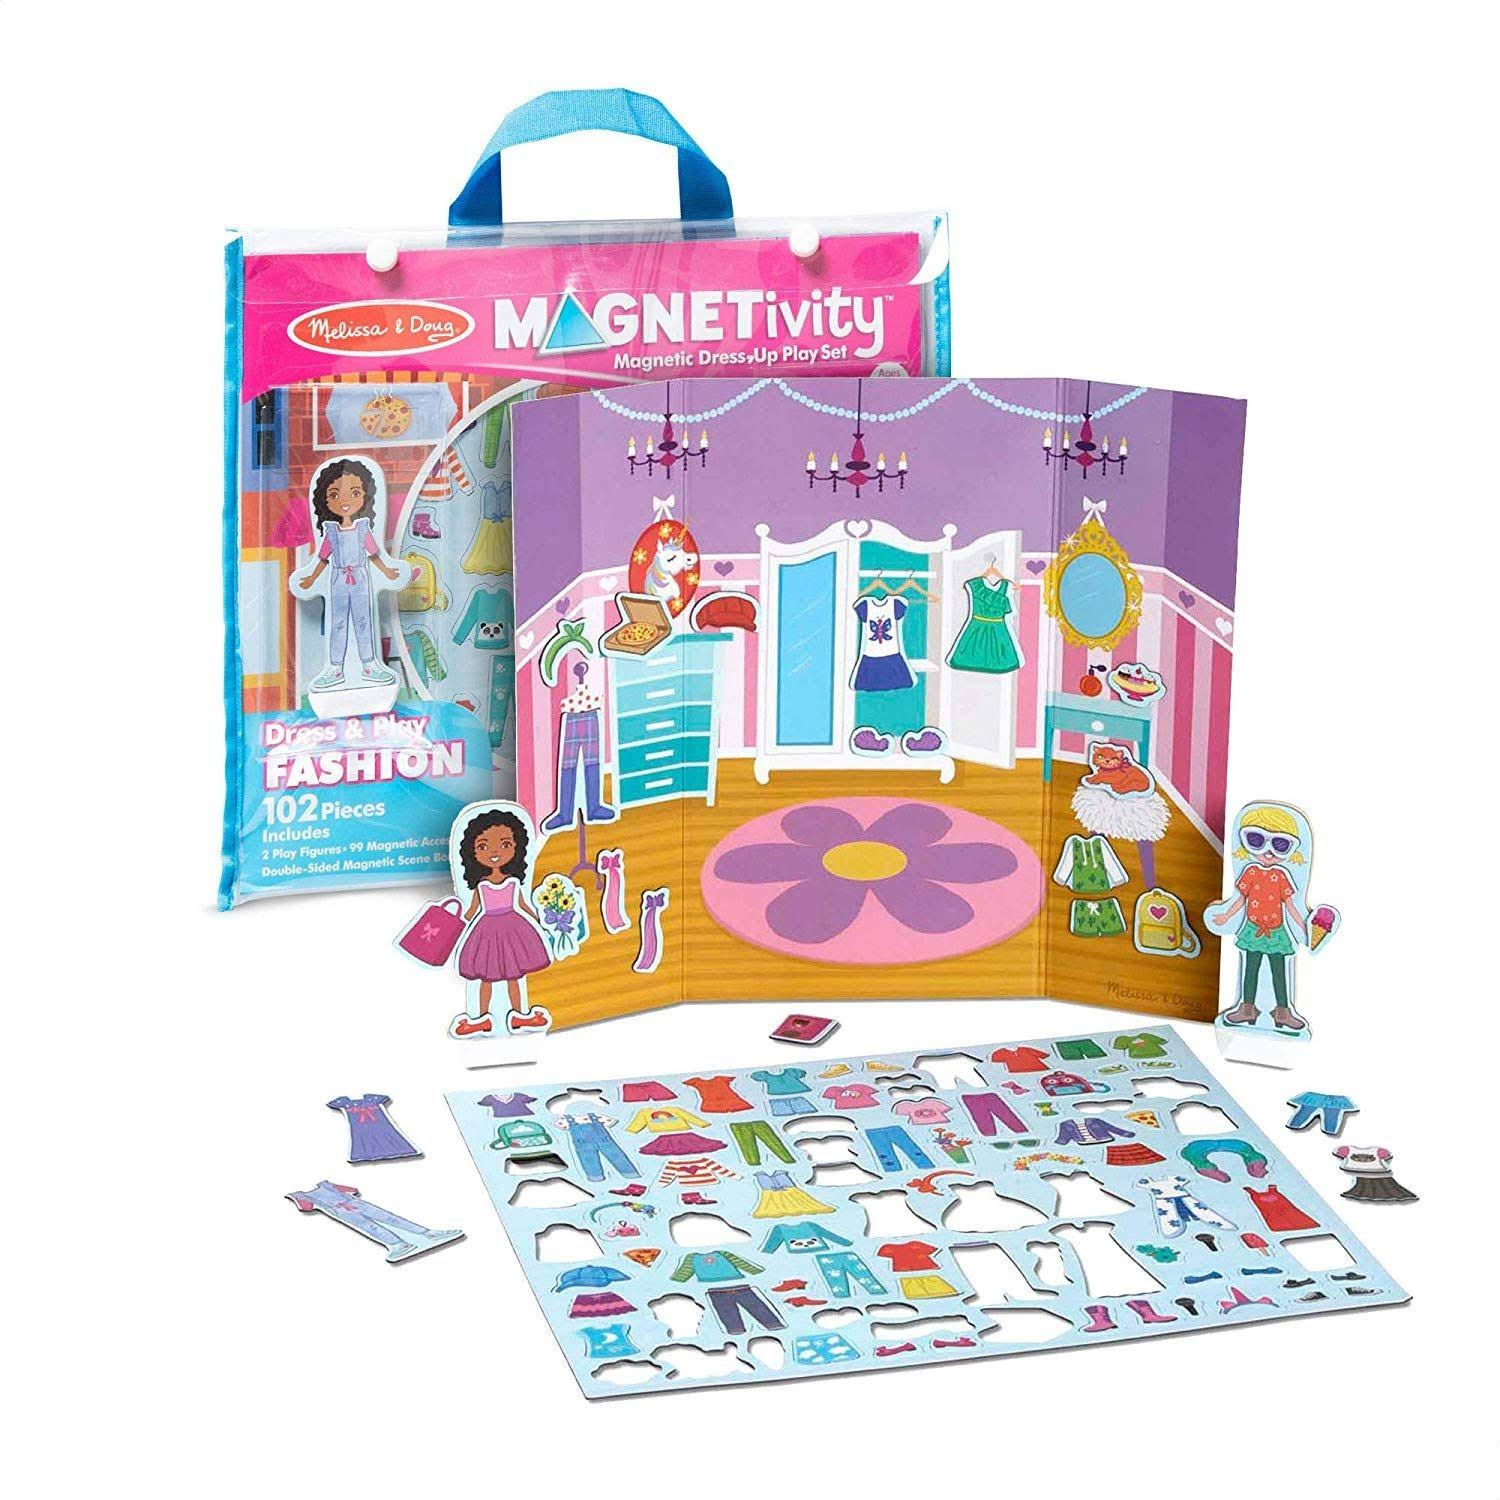 Melissa & Doug Magnetivity Dress & Play Fashion Magnetic Dress-Up Play Set